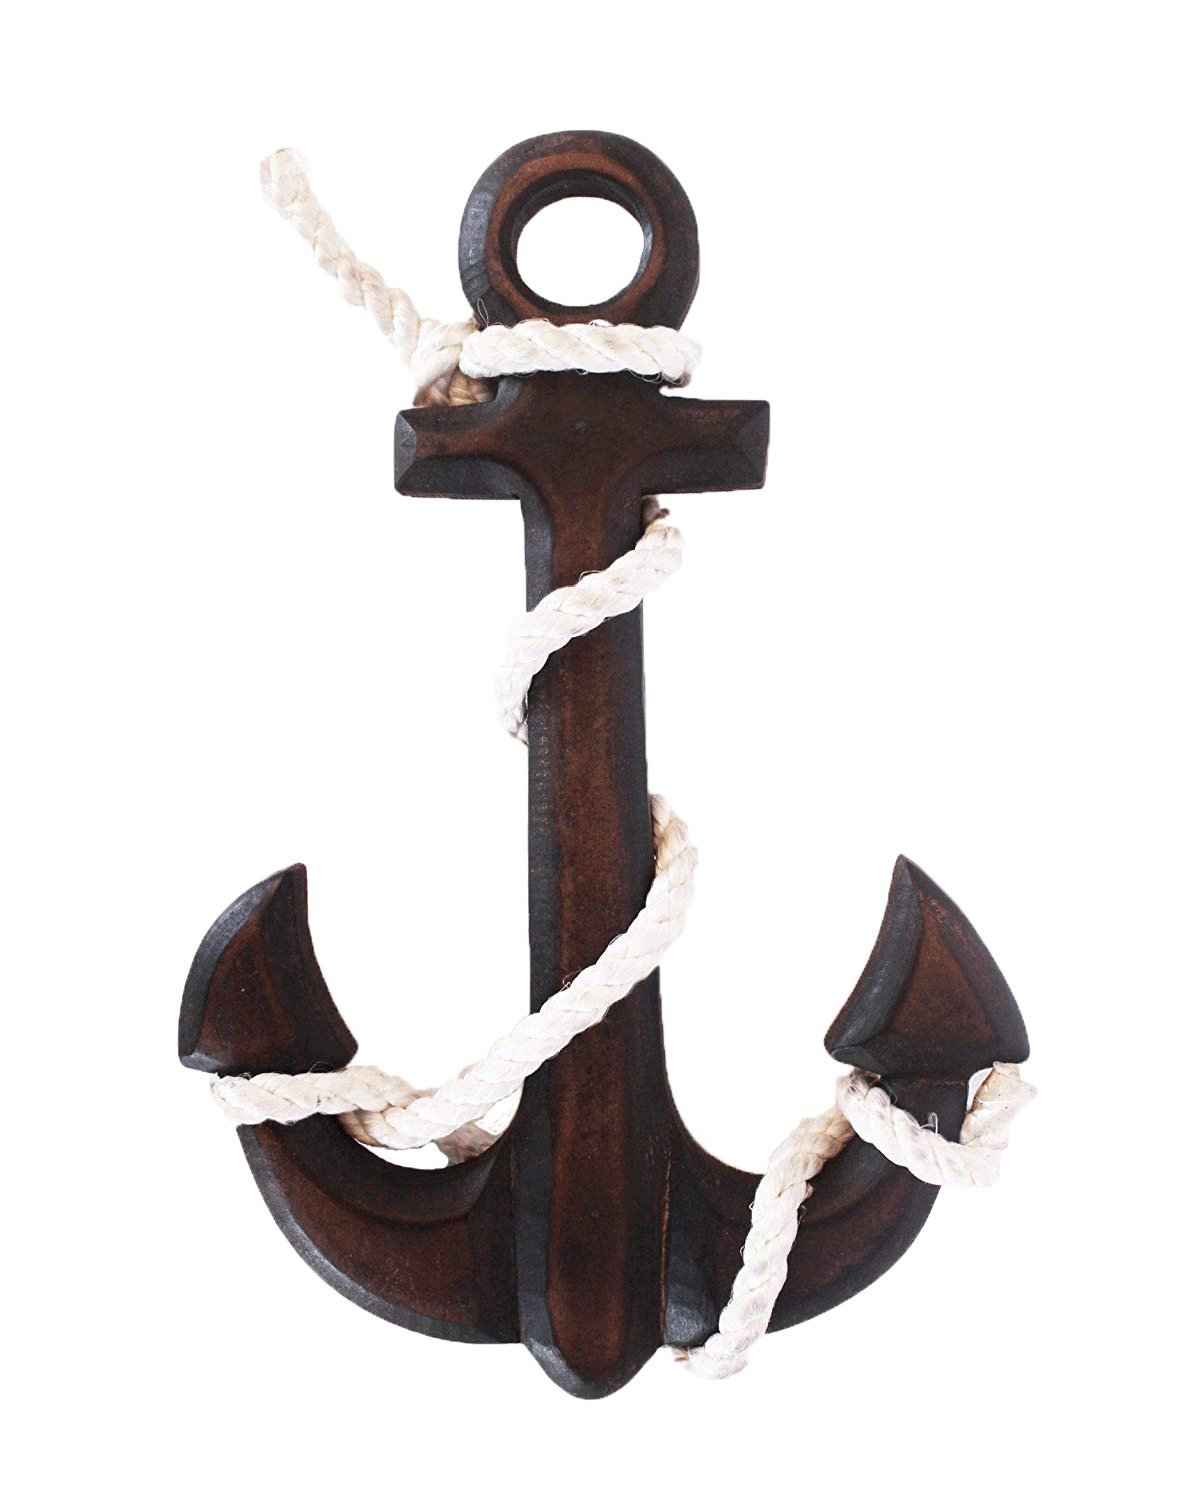 The StoreKing Wooden Boat Anchor with Crossbar, Steering Wheel, Wall Décor Home Décor